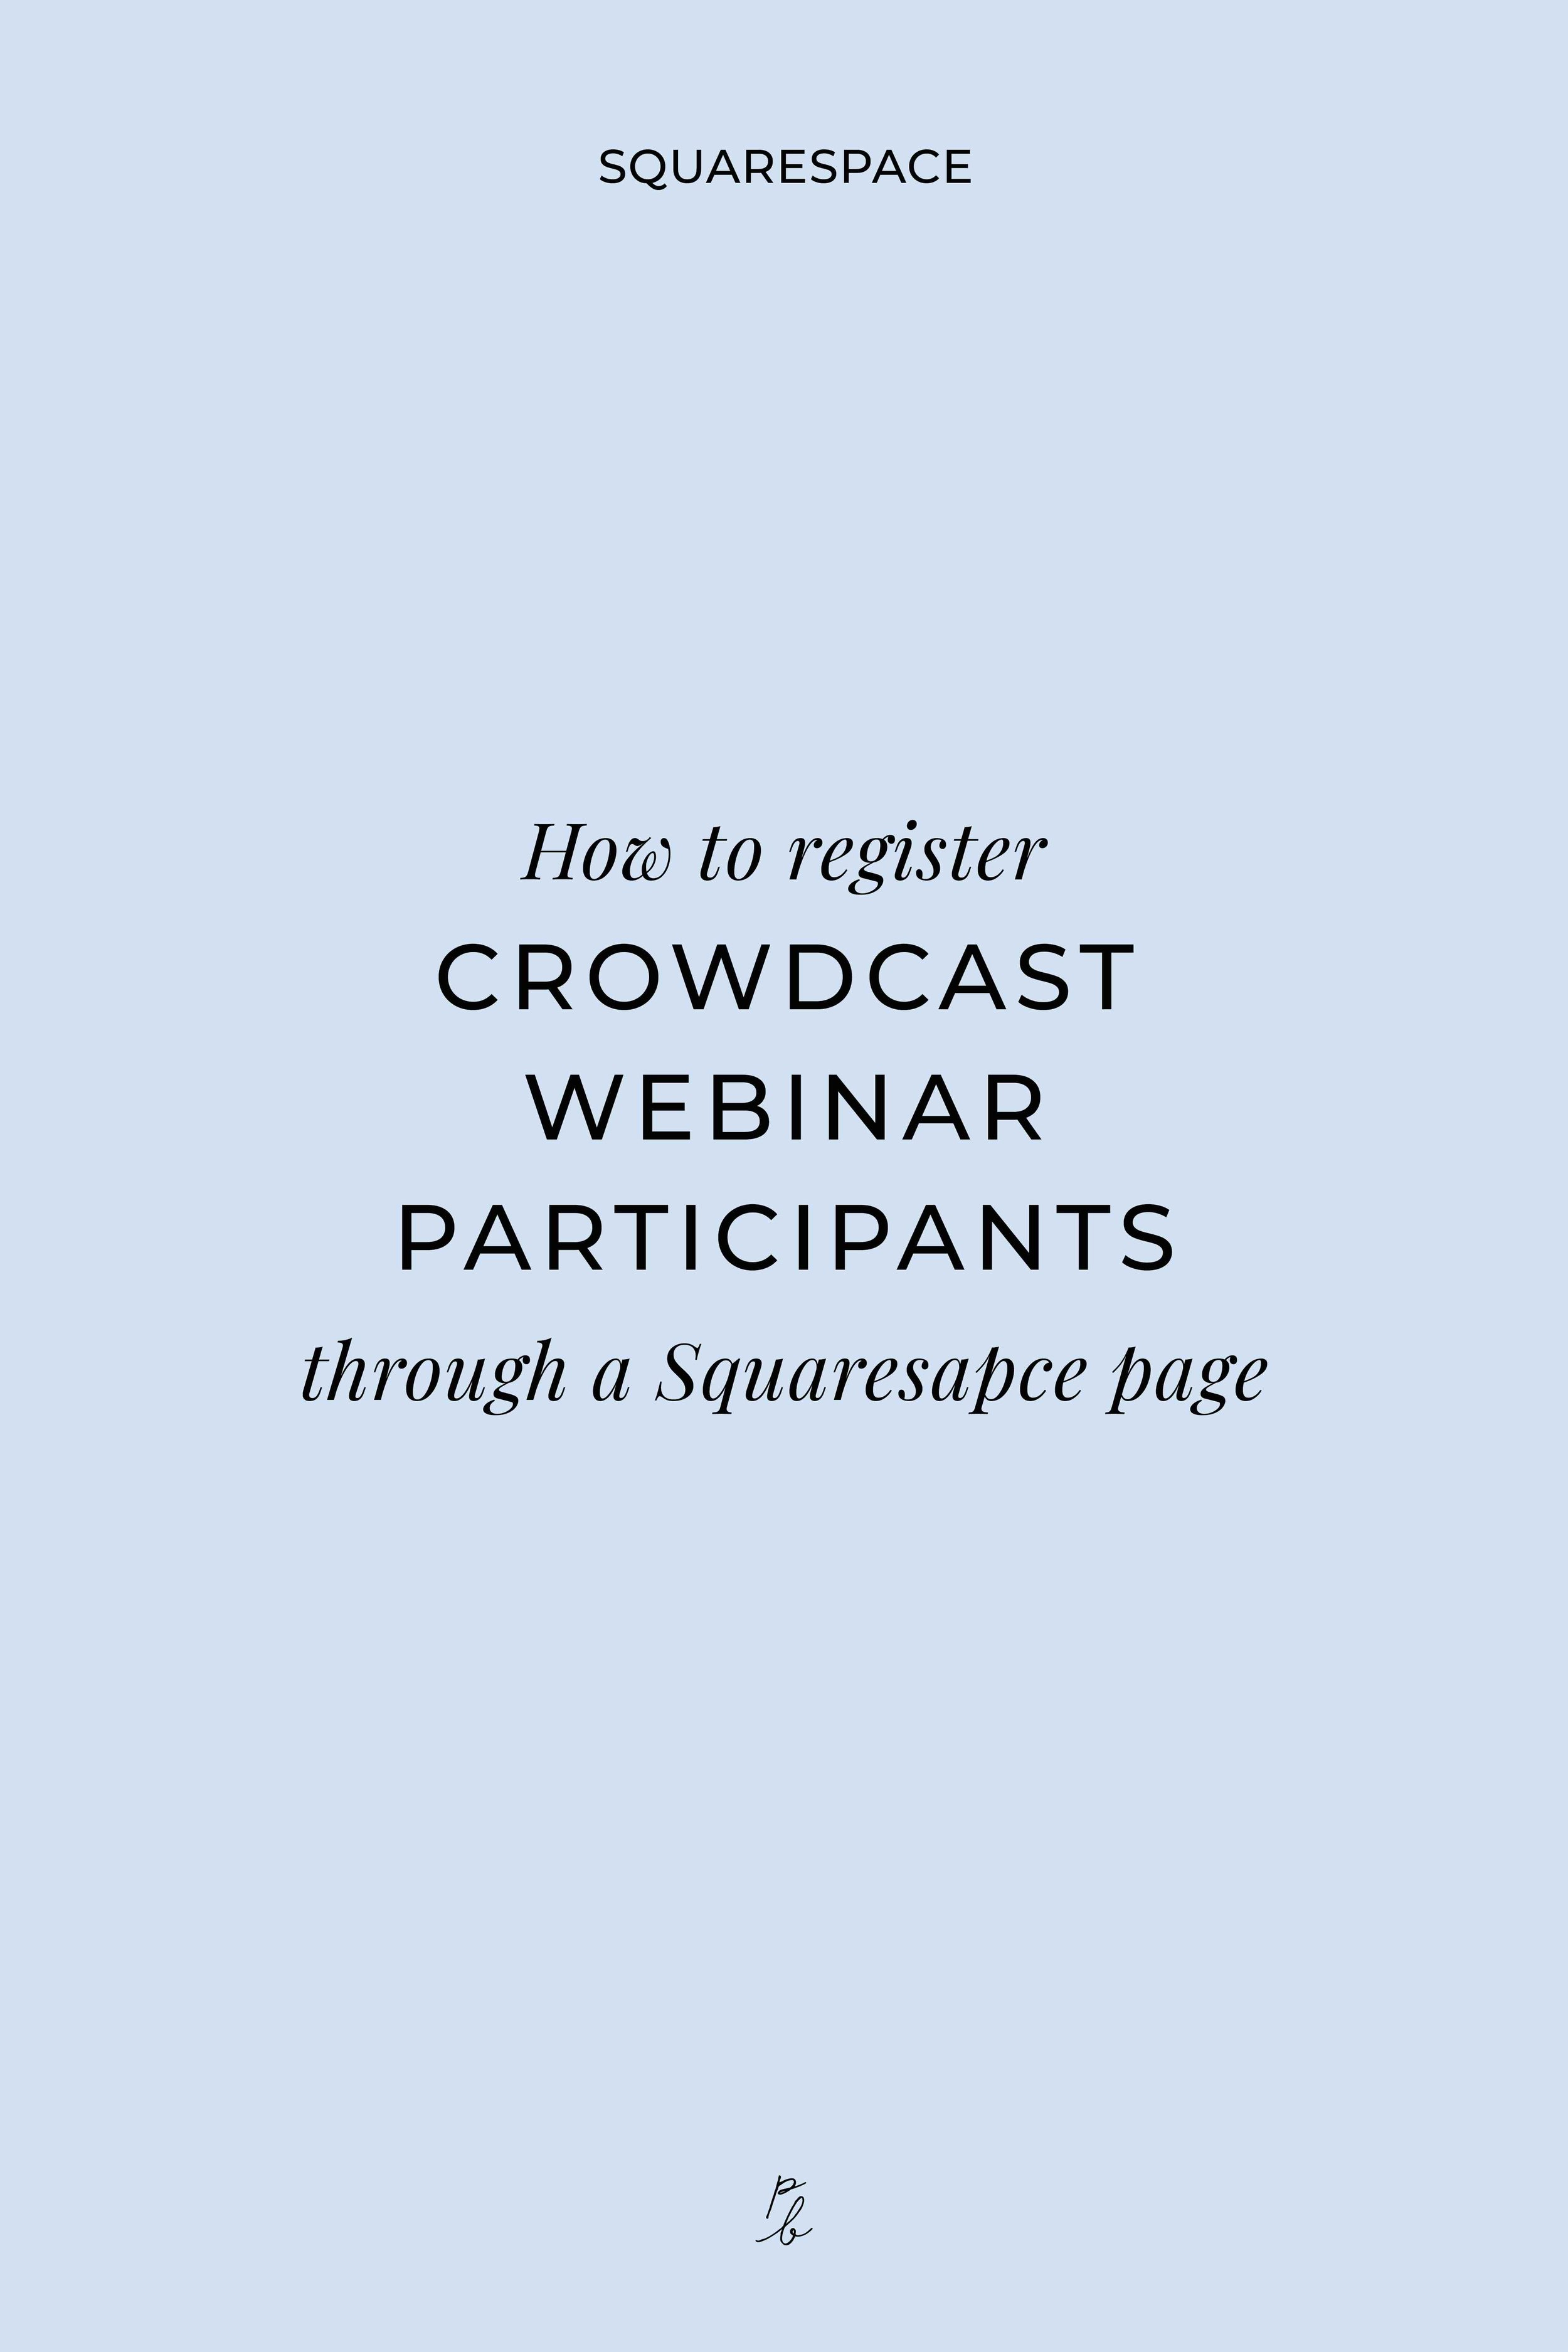 How to register Crowdcast webinar participants through a Squarespace page-03.jpeg